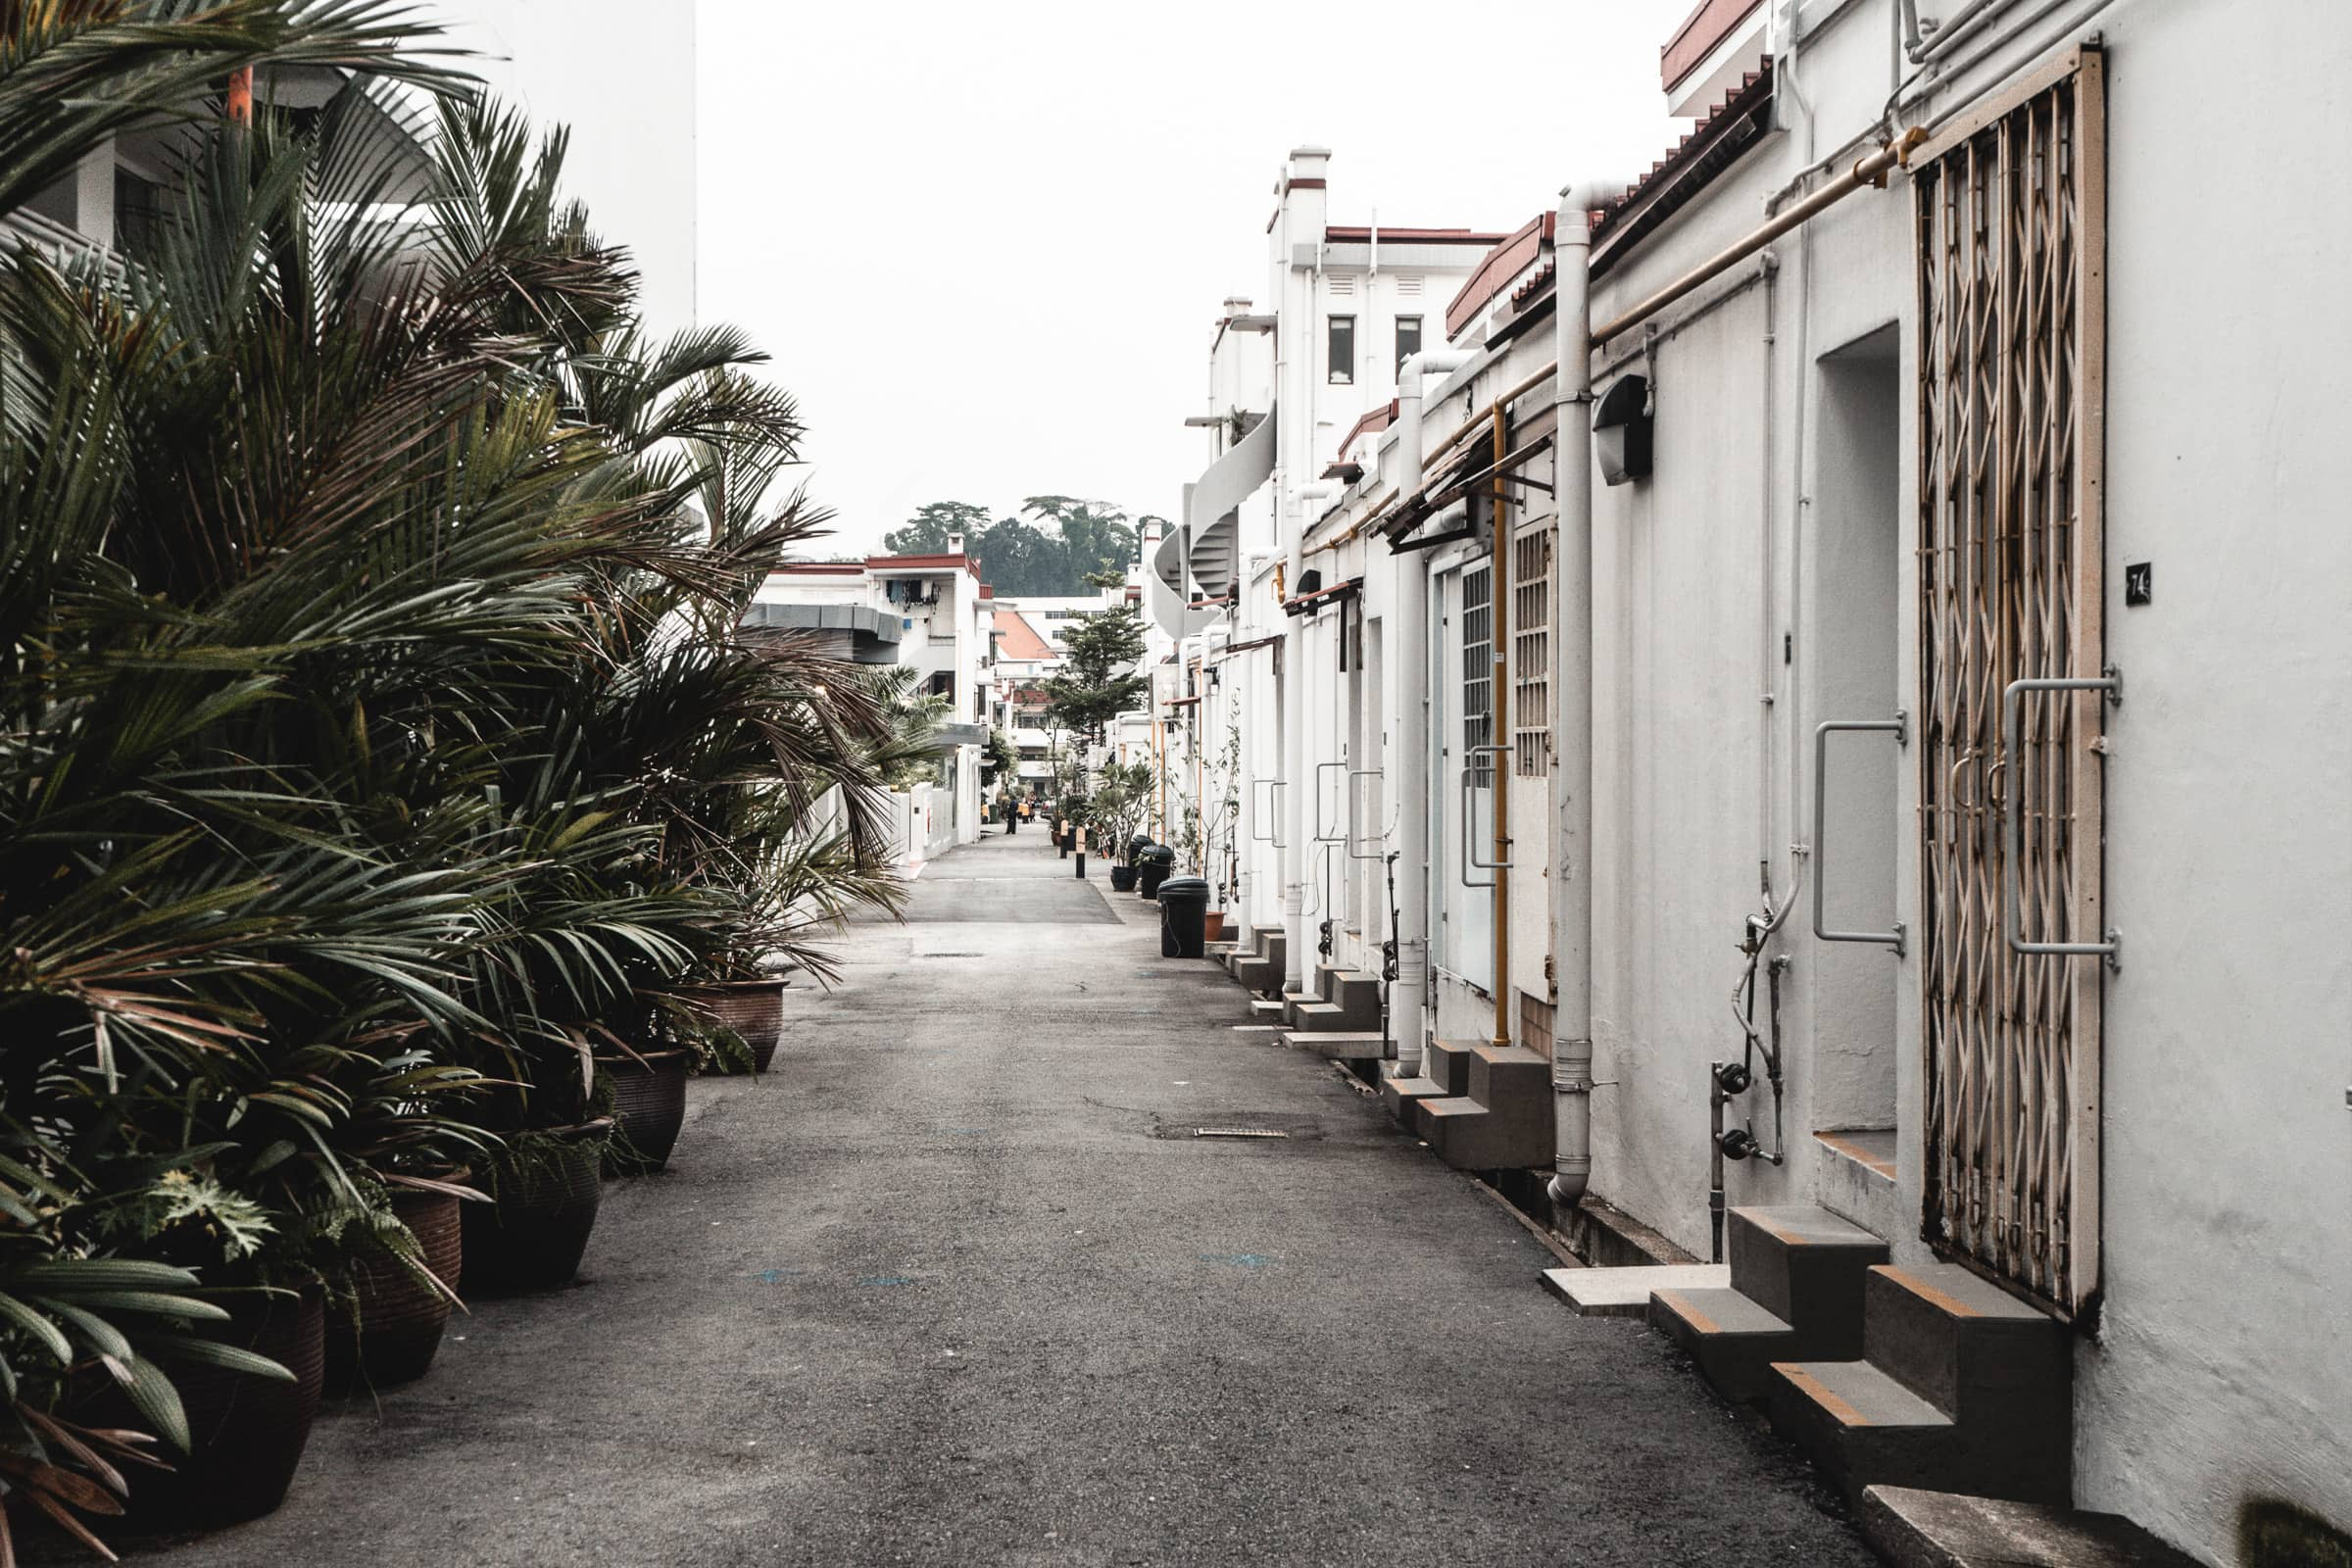 Tiong Bahru: The hottest district in Singapore!